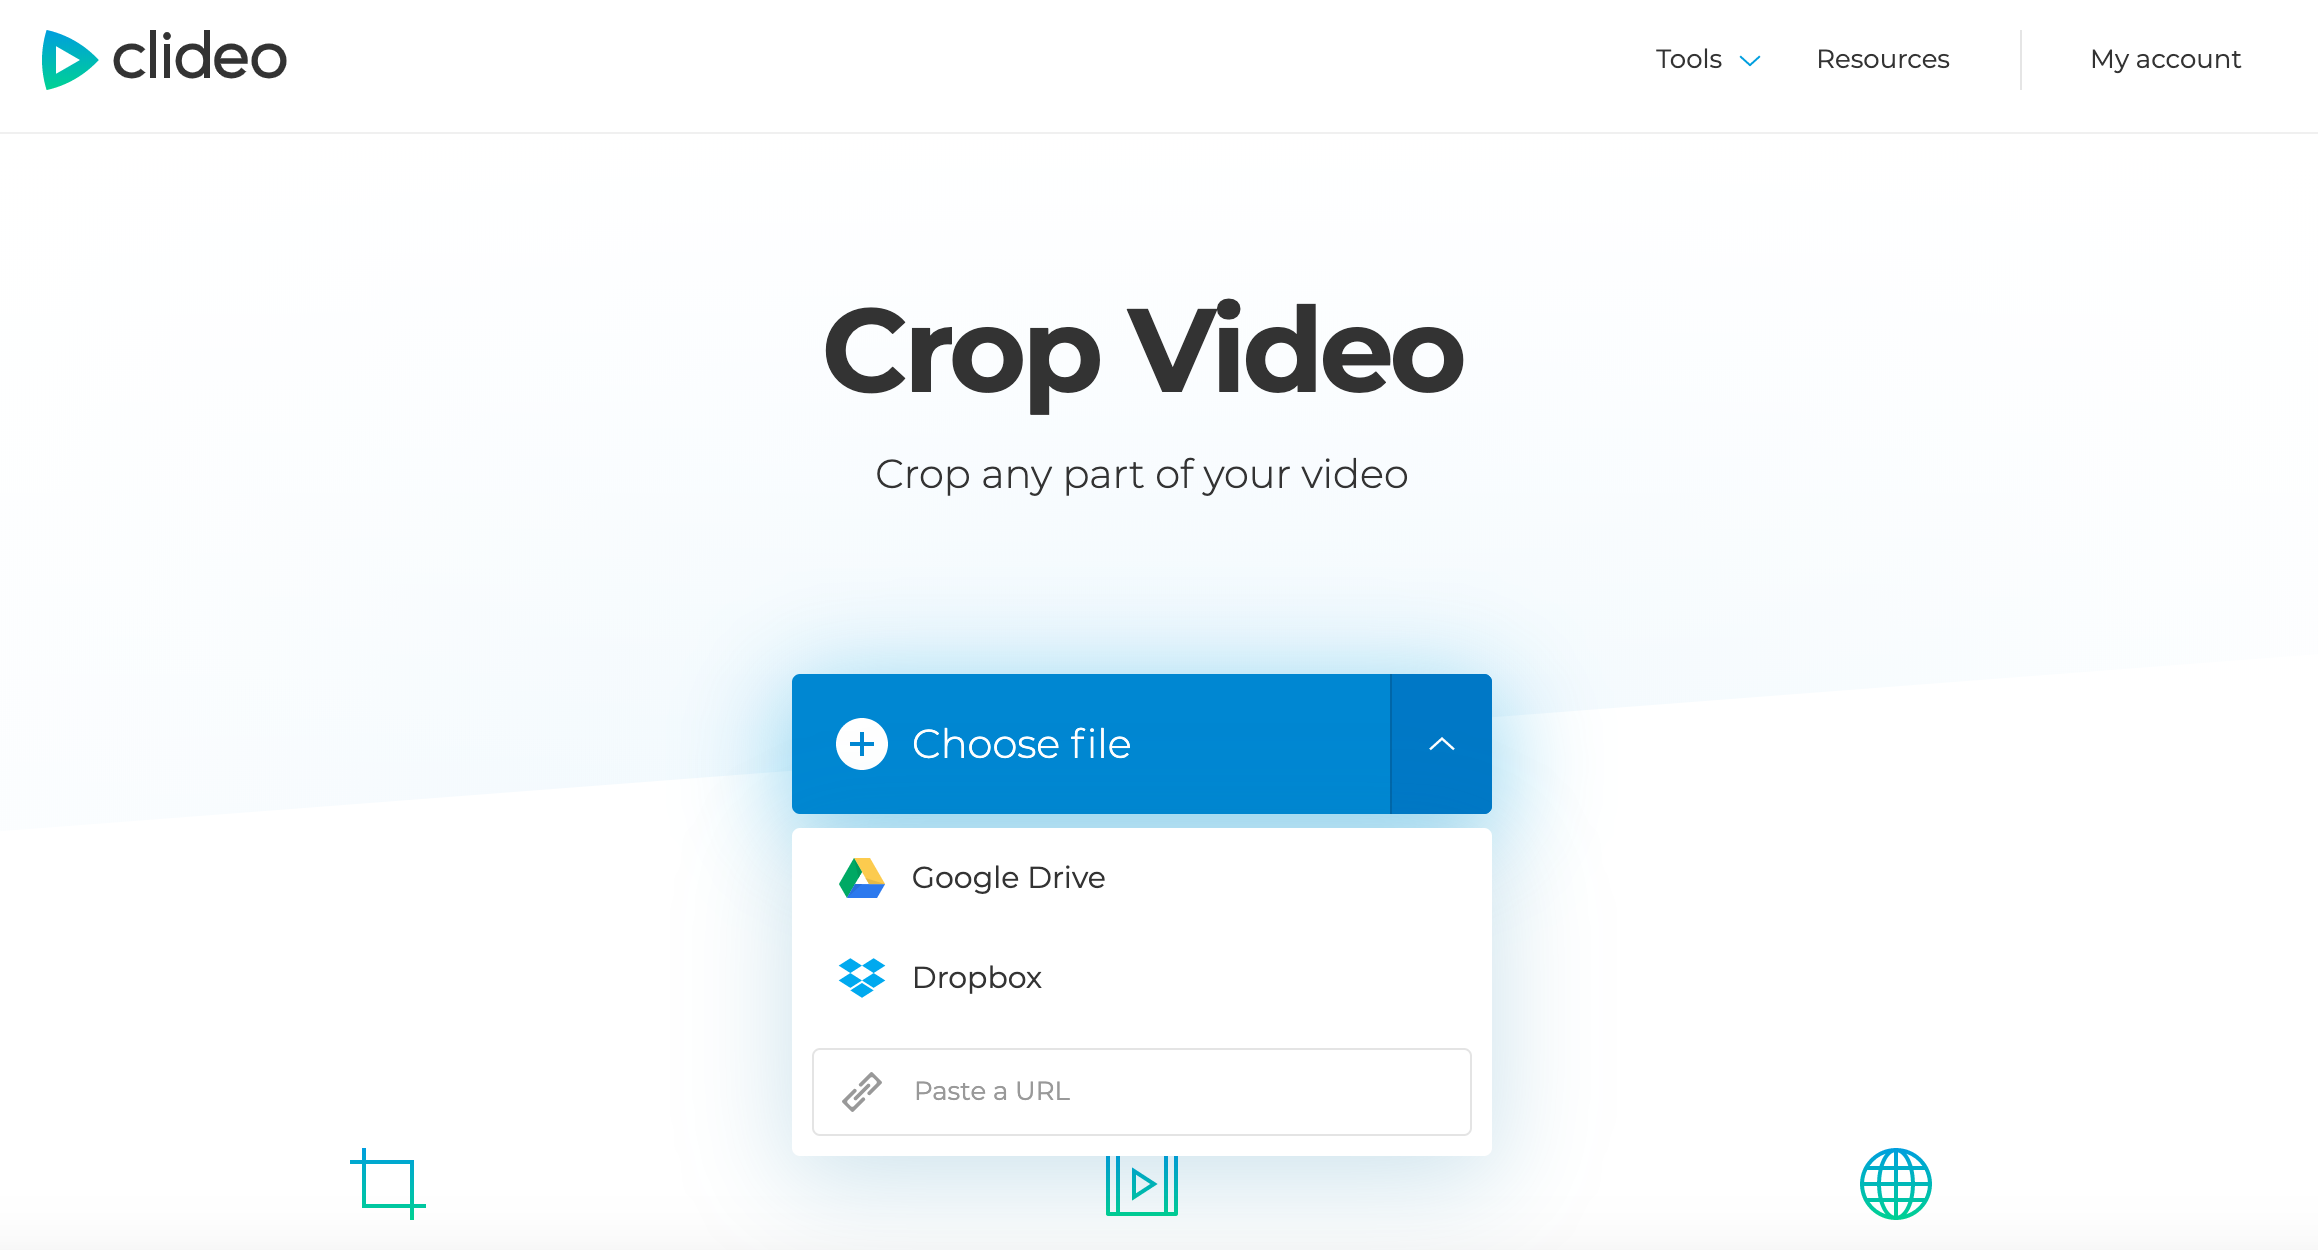 Upload a video you want to crop from YouTube